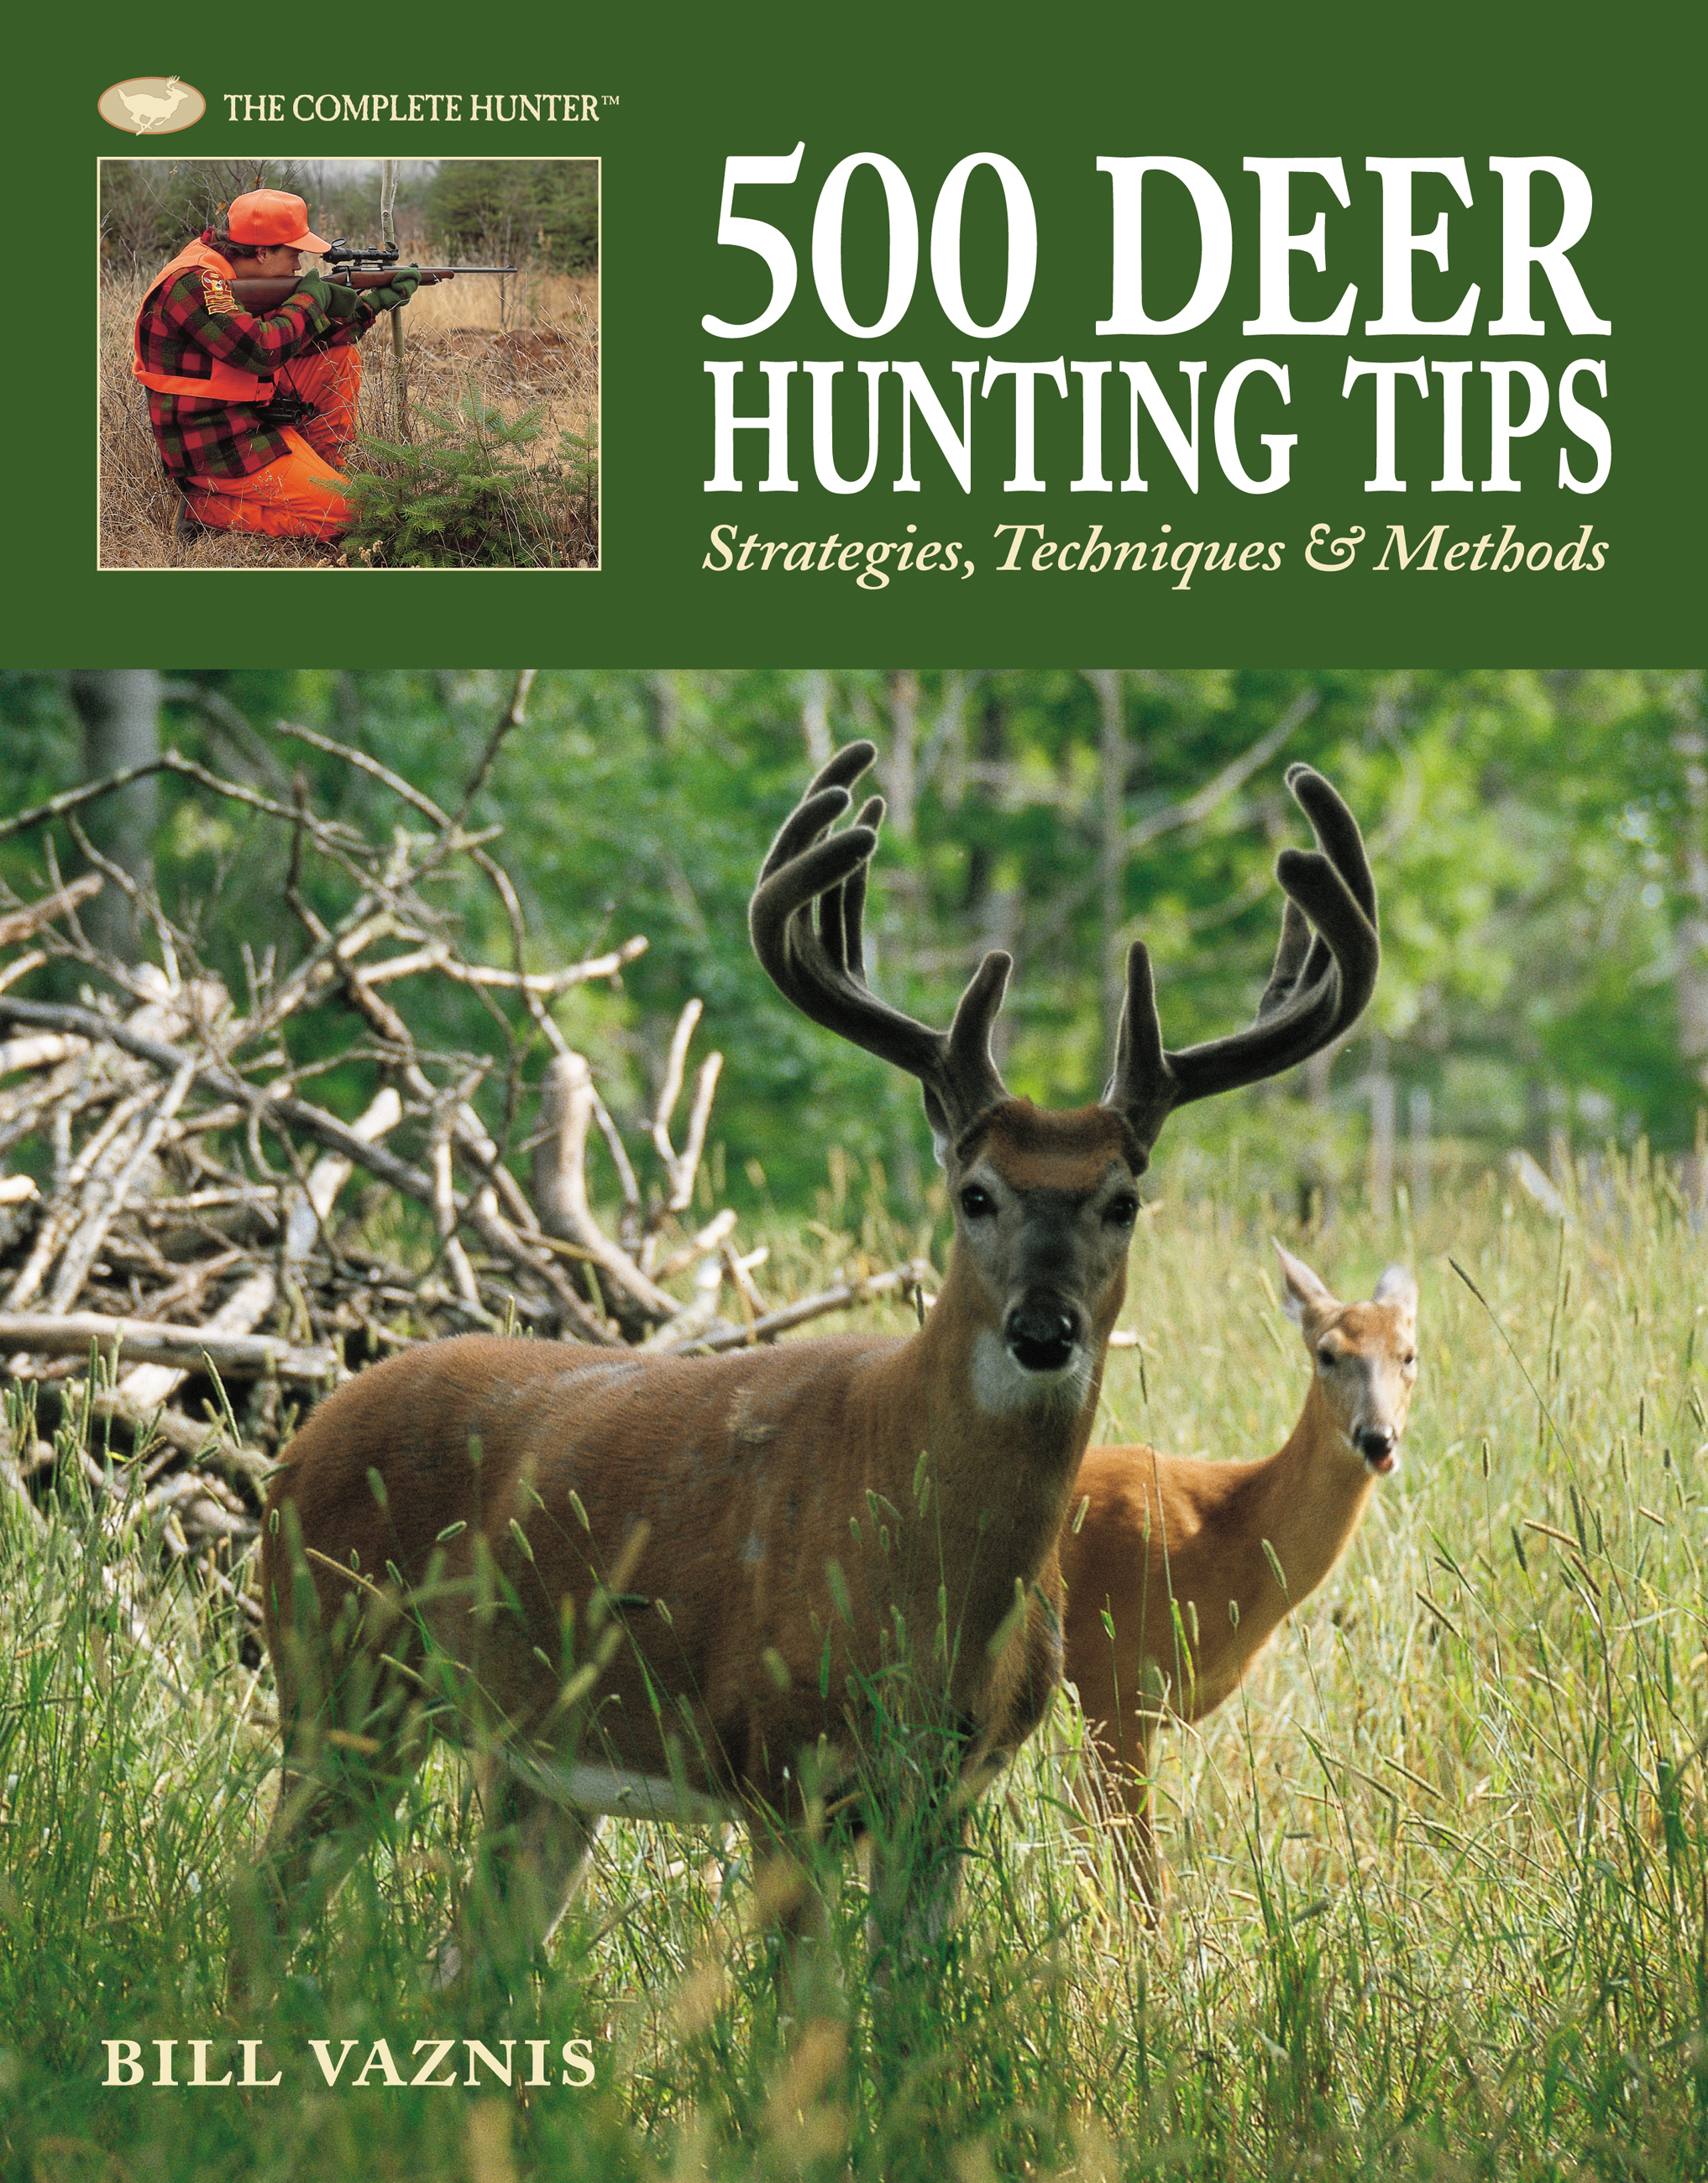 500 Deer Hunting Tips Strategies, Techniques & Methods